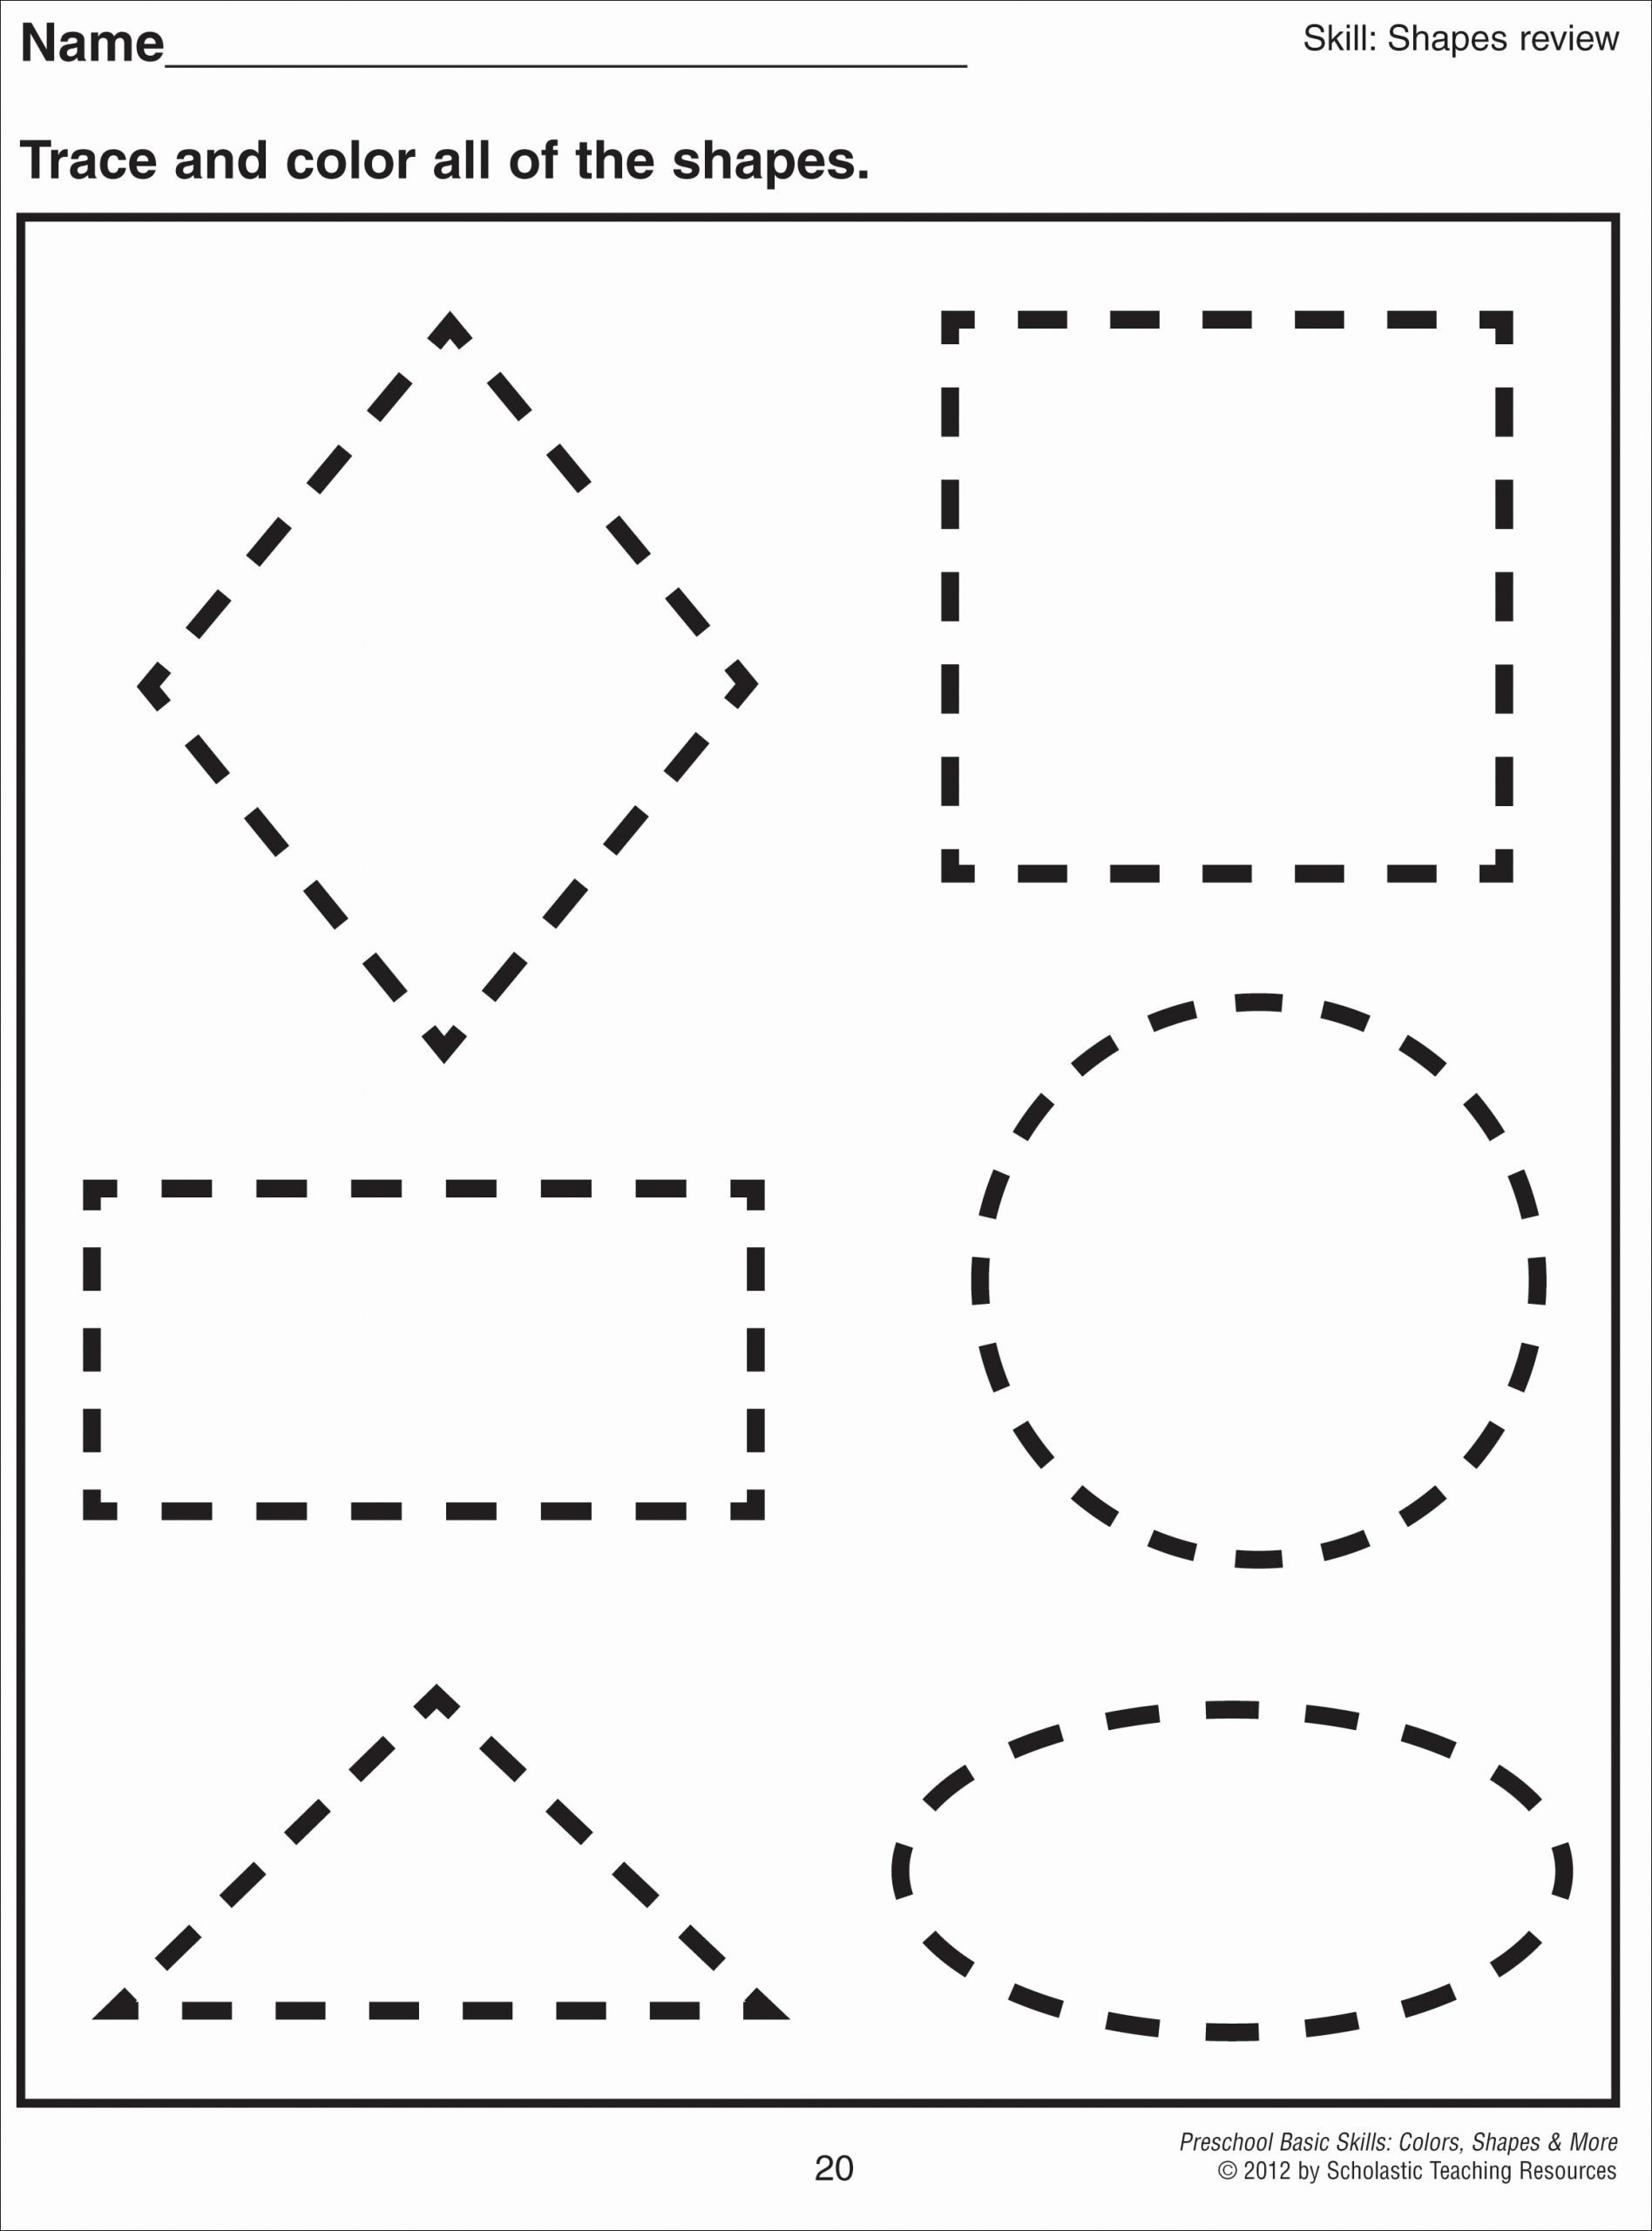 Worksheets for Preschoolers Pinterest Lovely Math Worksheet 1000 Images About Preschool Shapes On